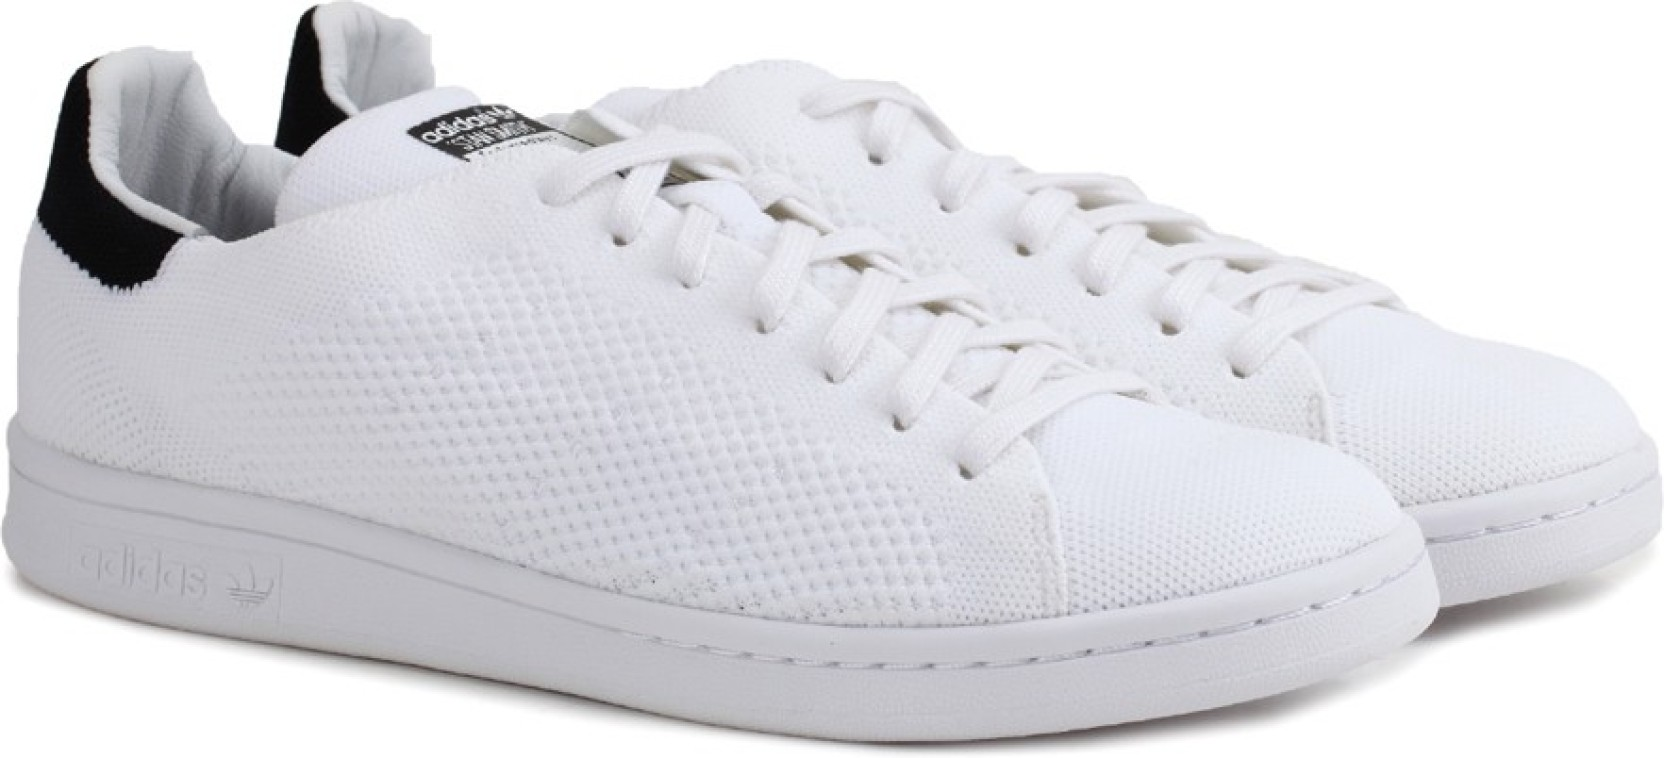 new style 6c3ea eaa2d ADIDAS ORIGINALS STAN SMITH PK Sneakers For Men